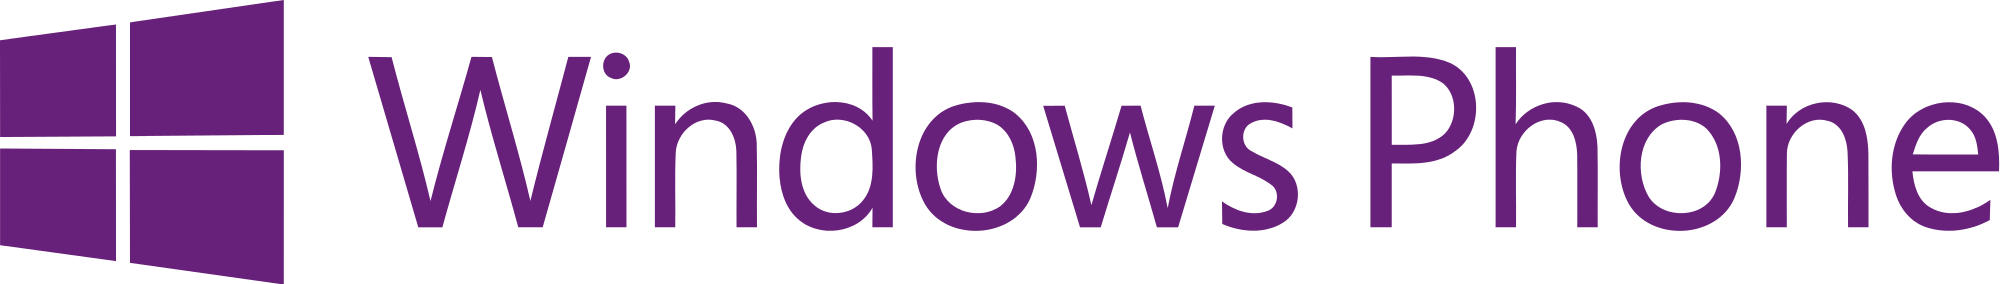 Windows_Phone_8_logo_and_wordmark_(purple).svg.png